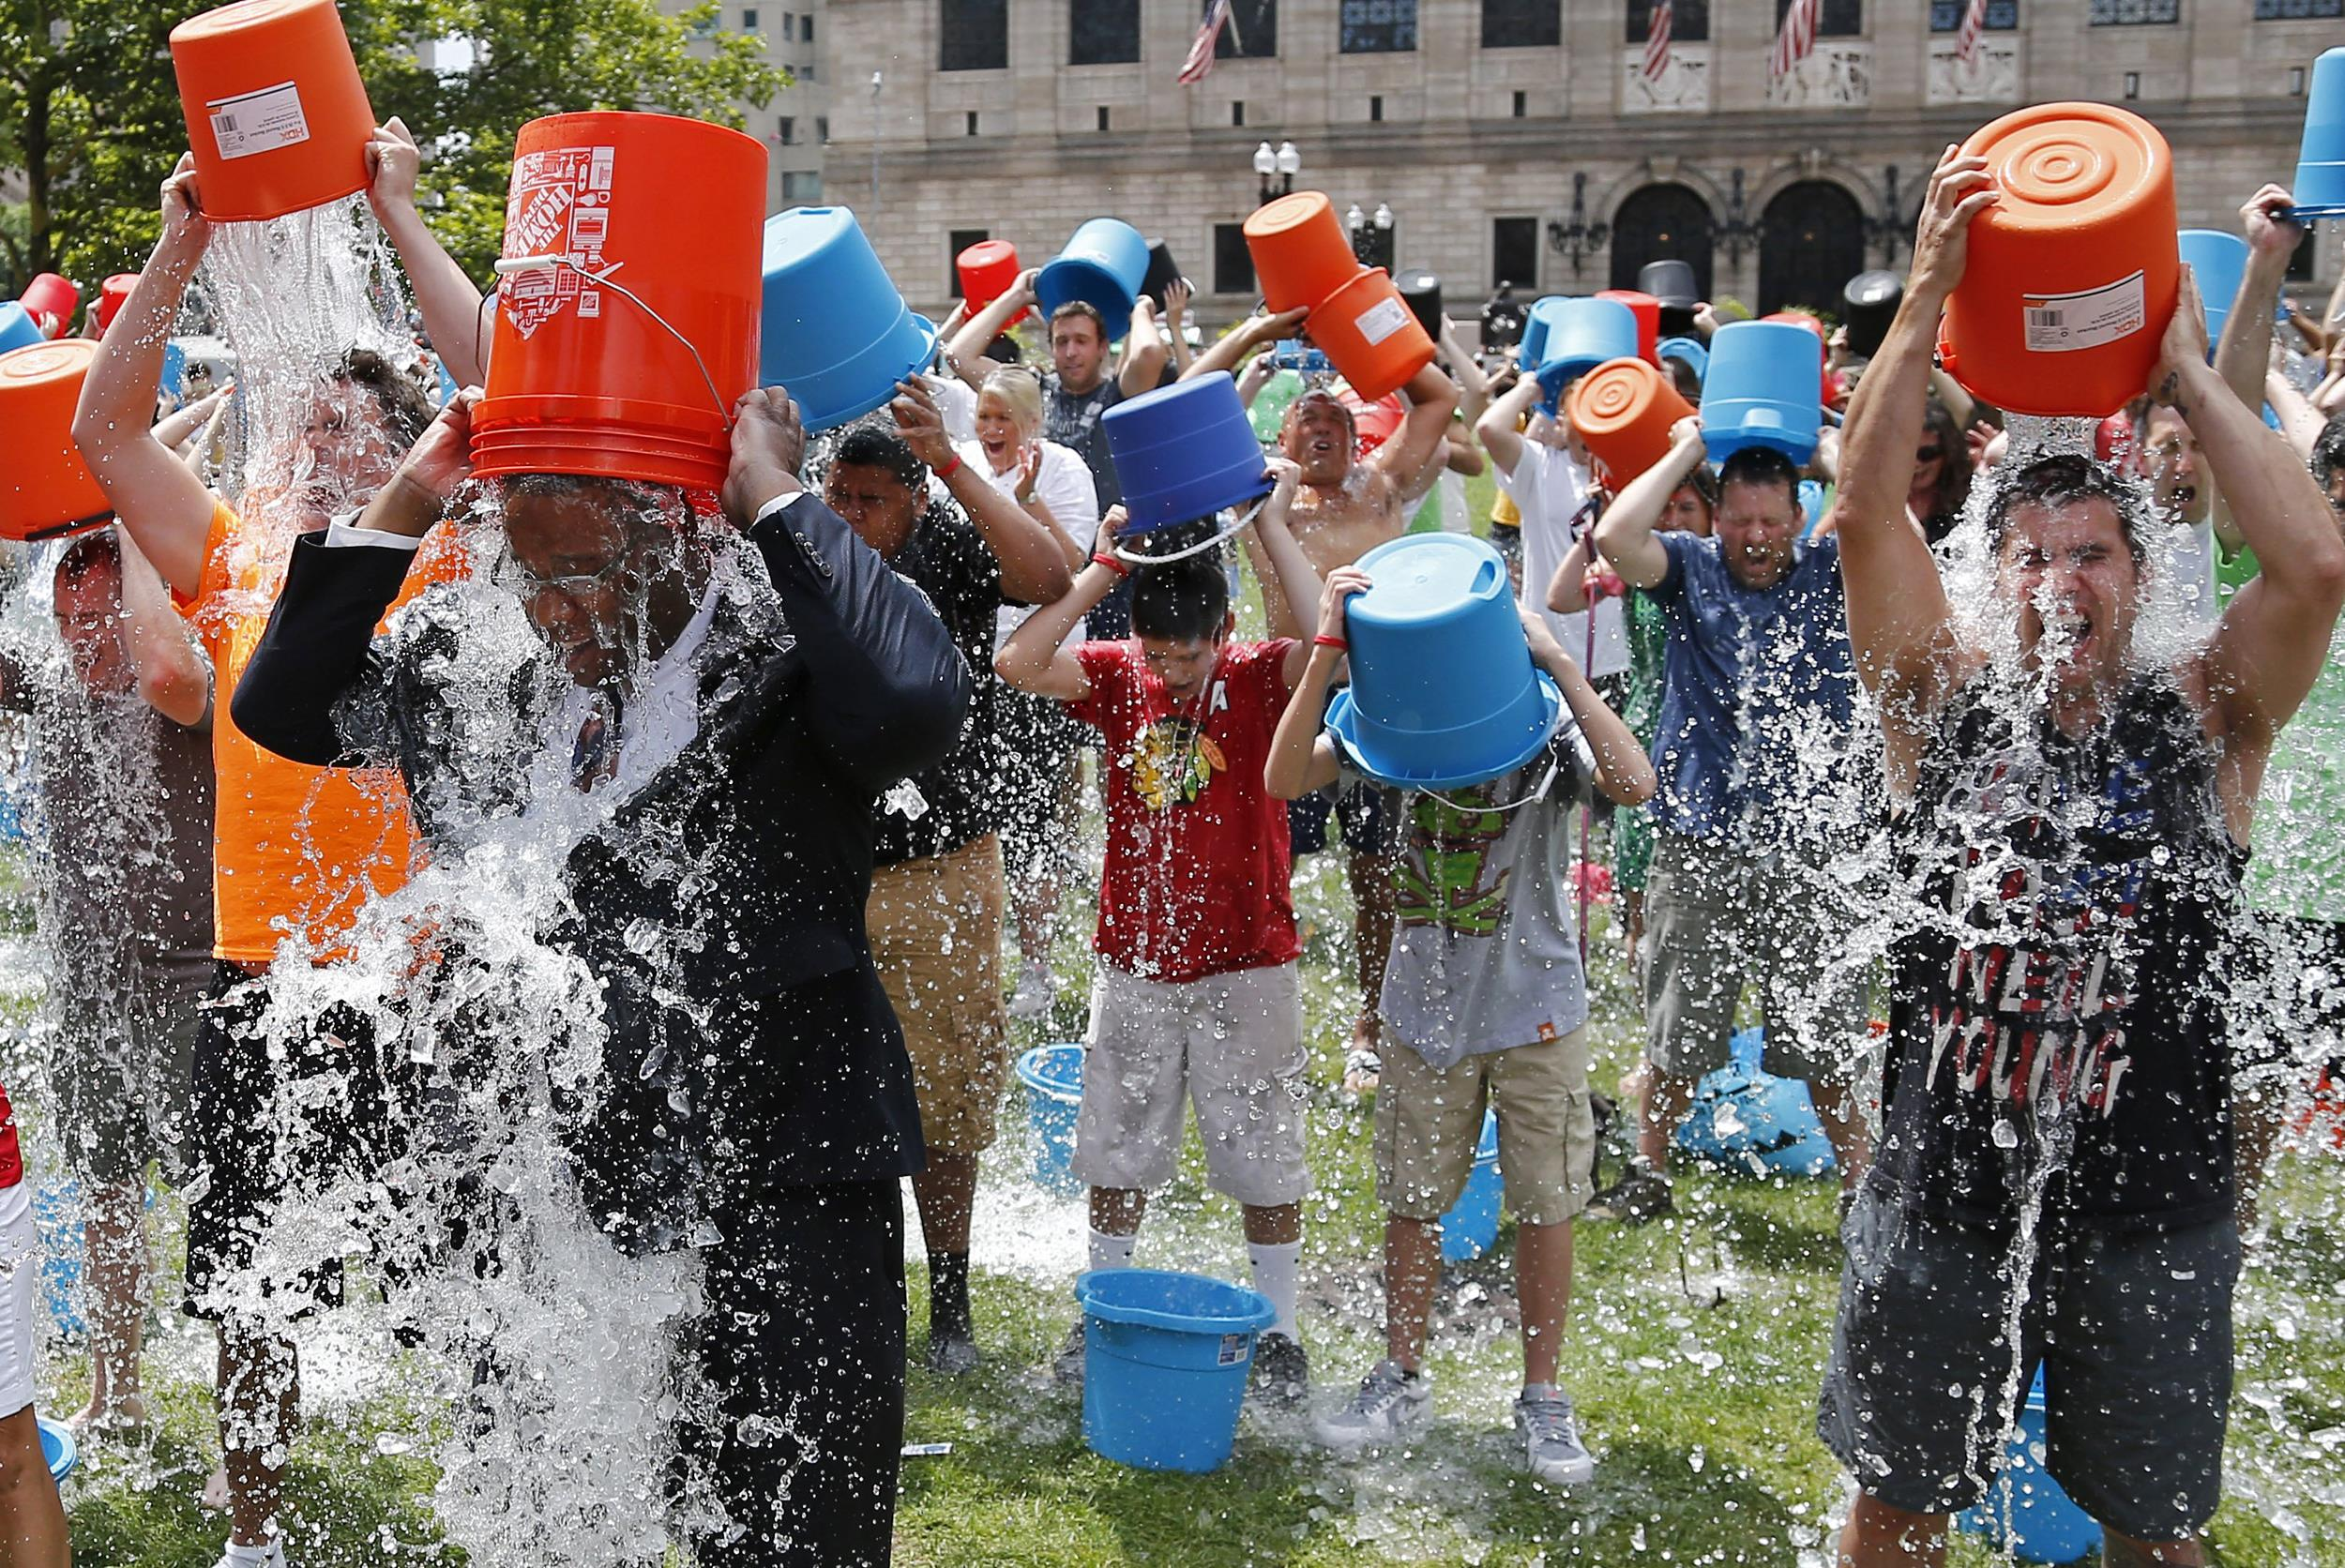 8 Reasons The Ice Bucket Challenge Went Viral